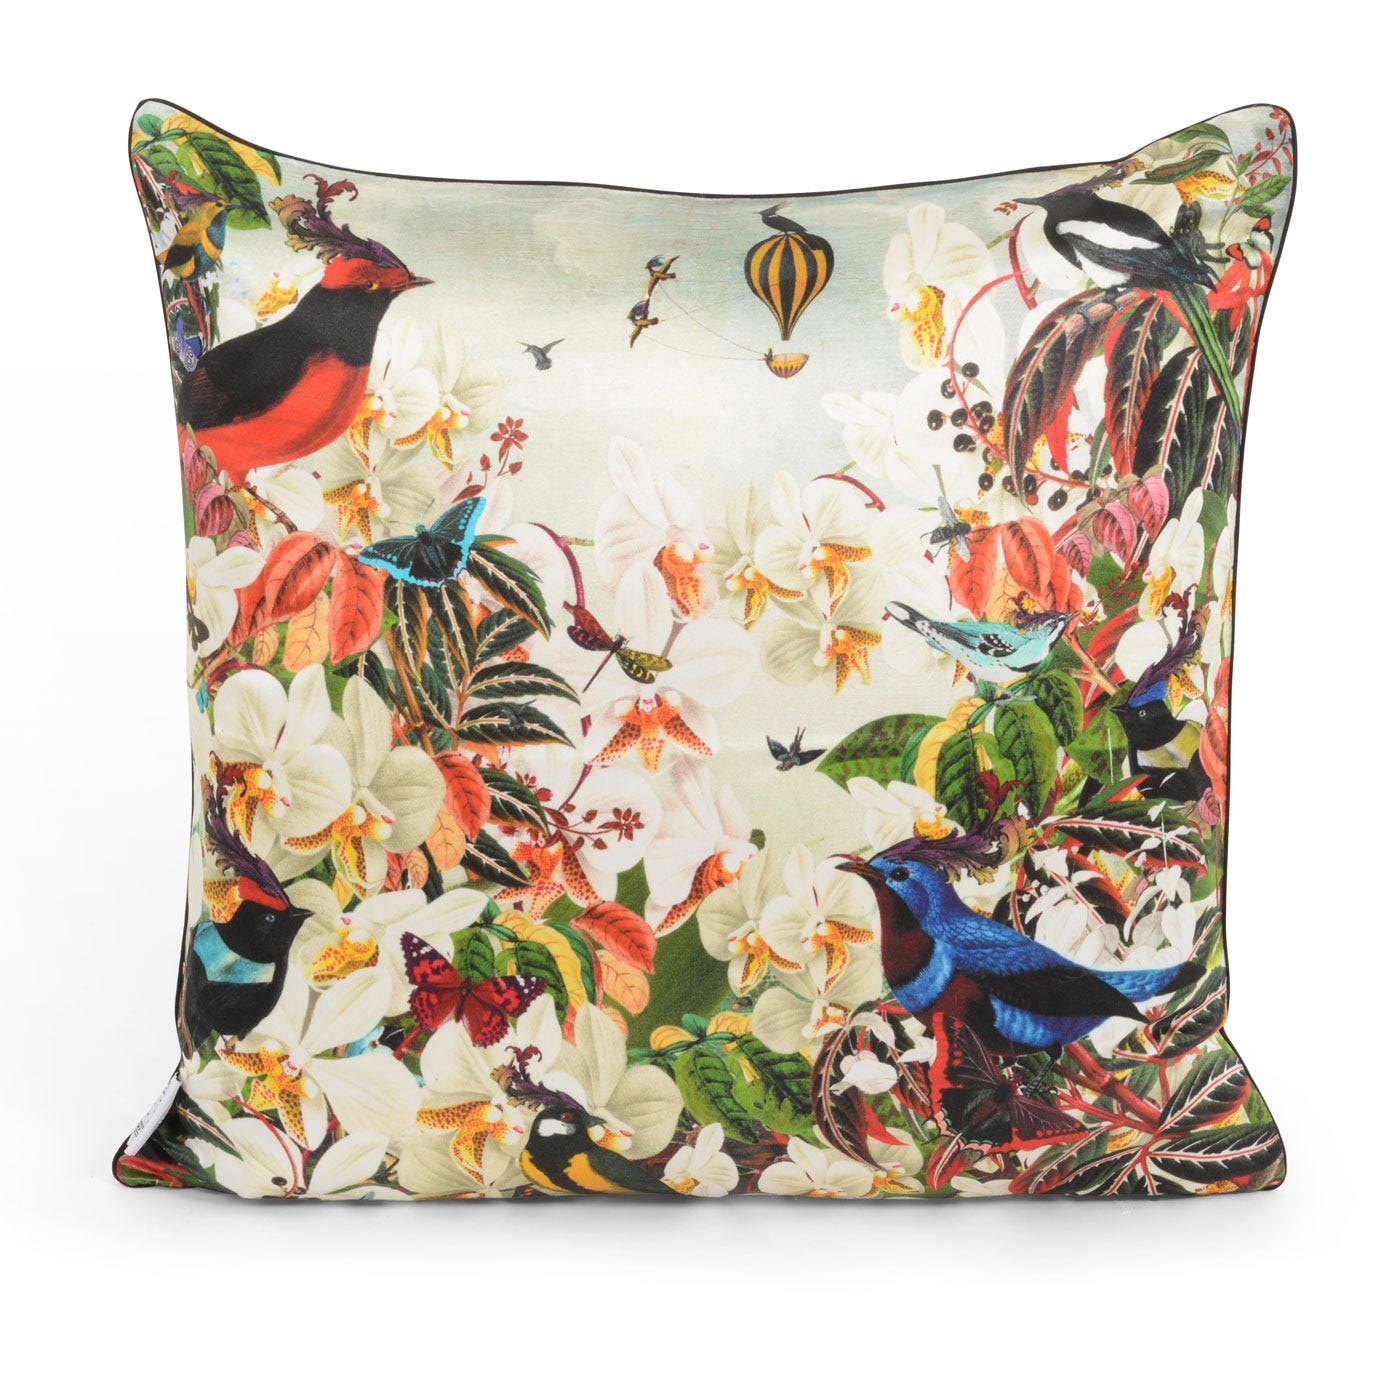 Water Birds Floral Cushion